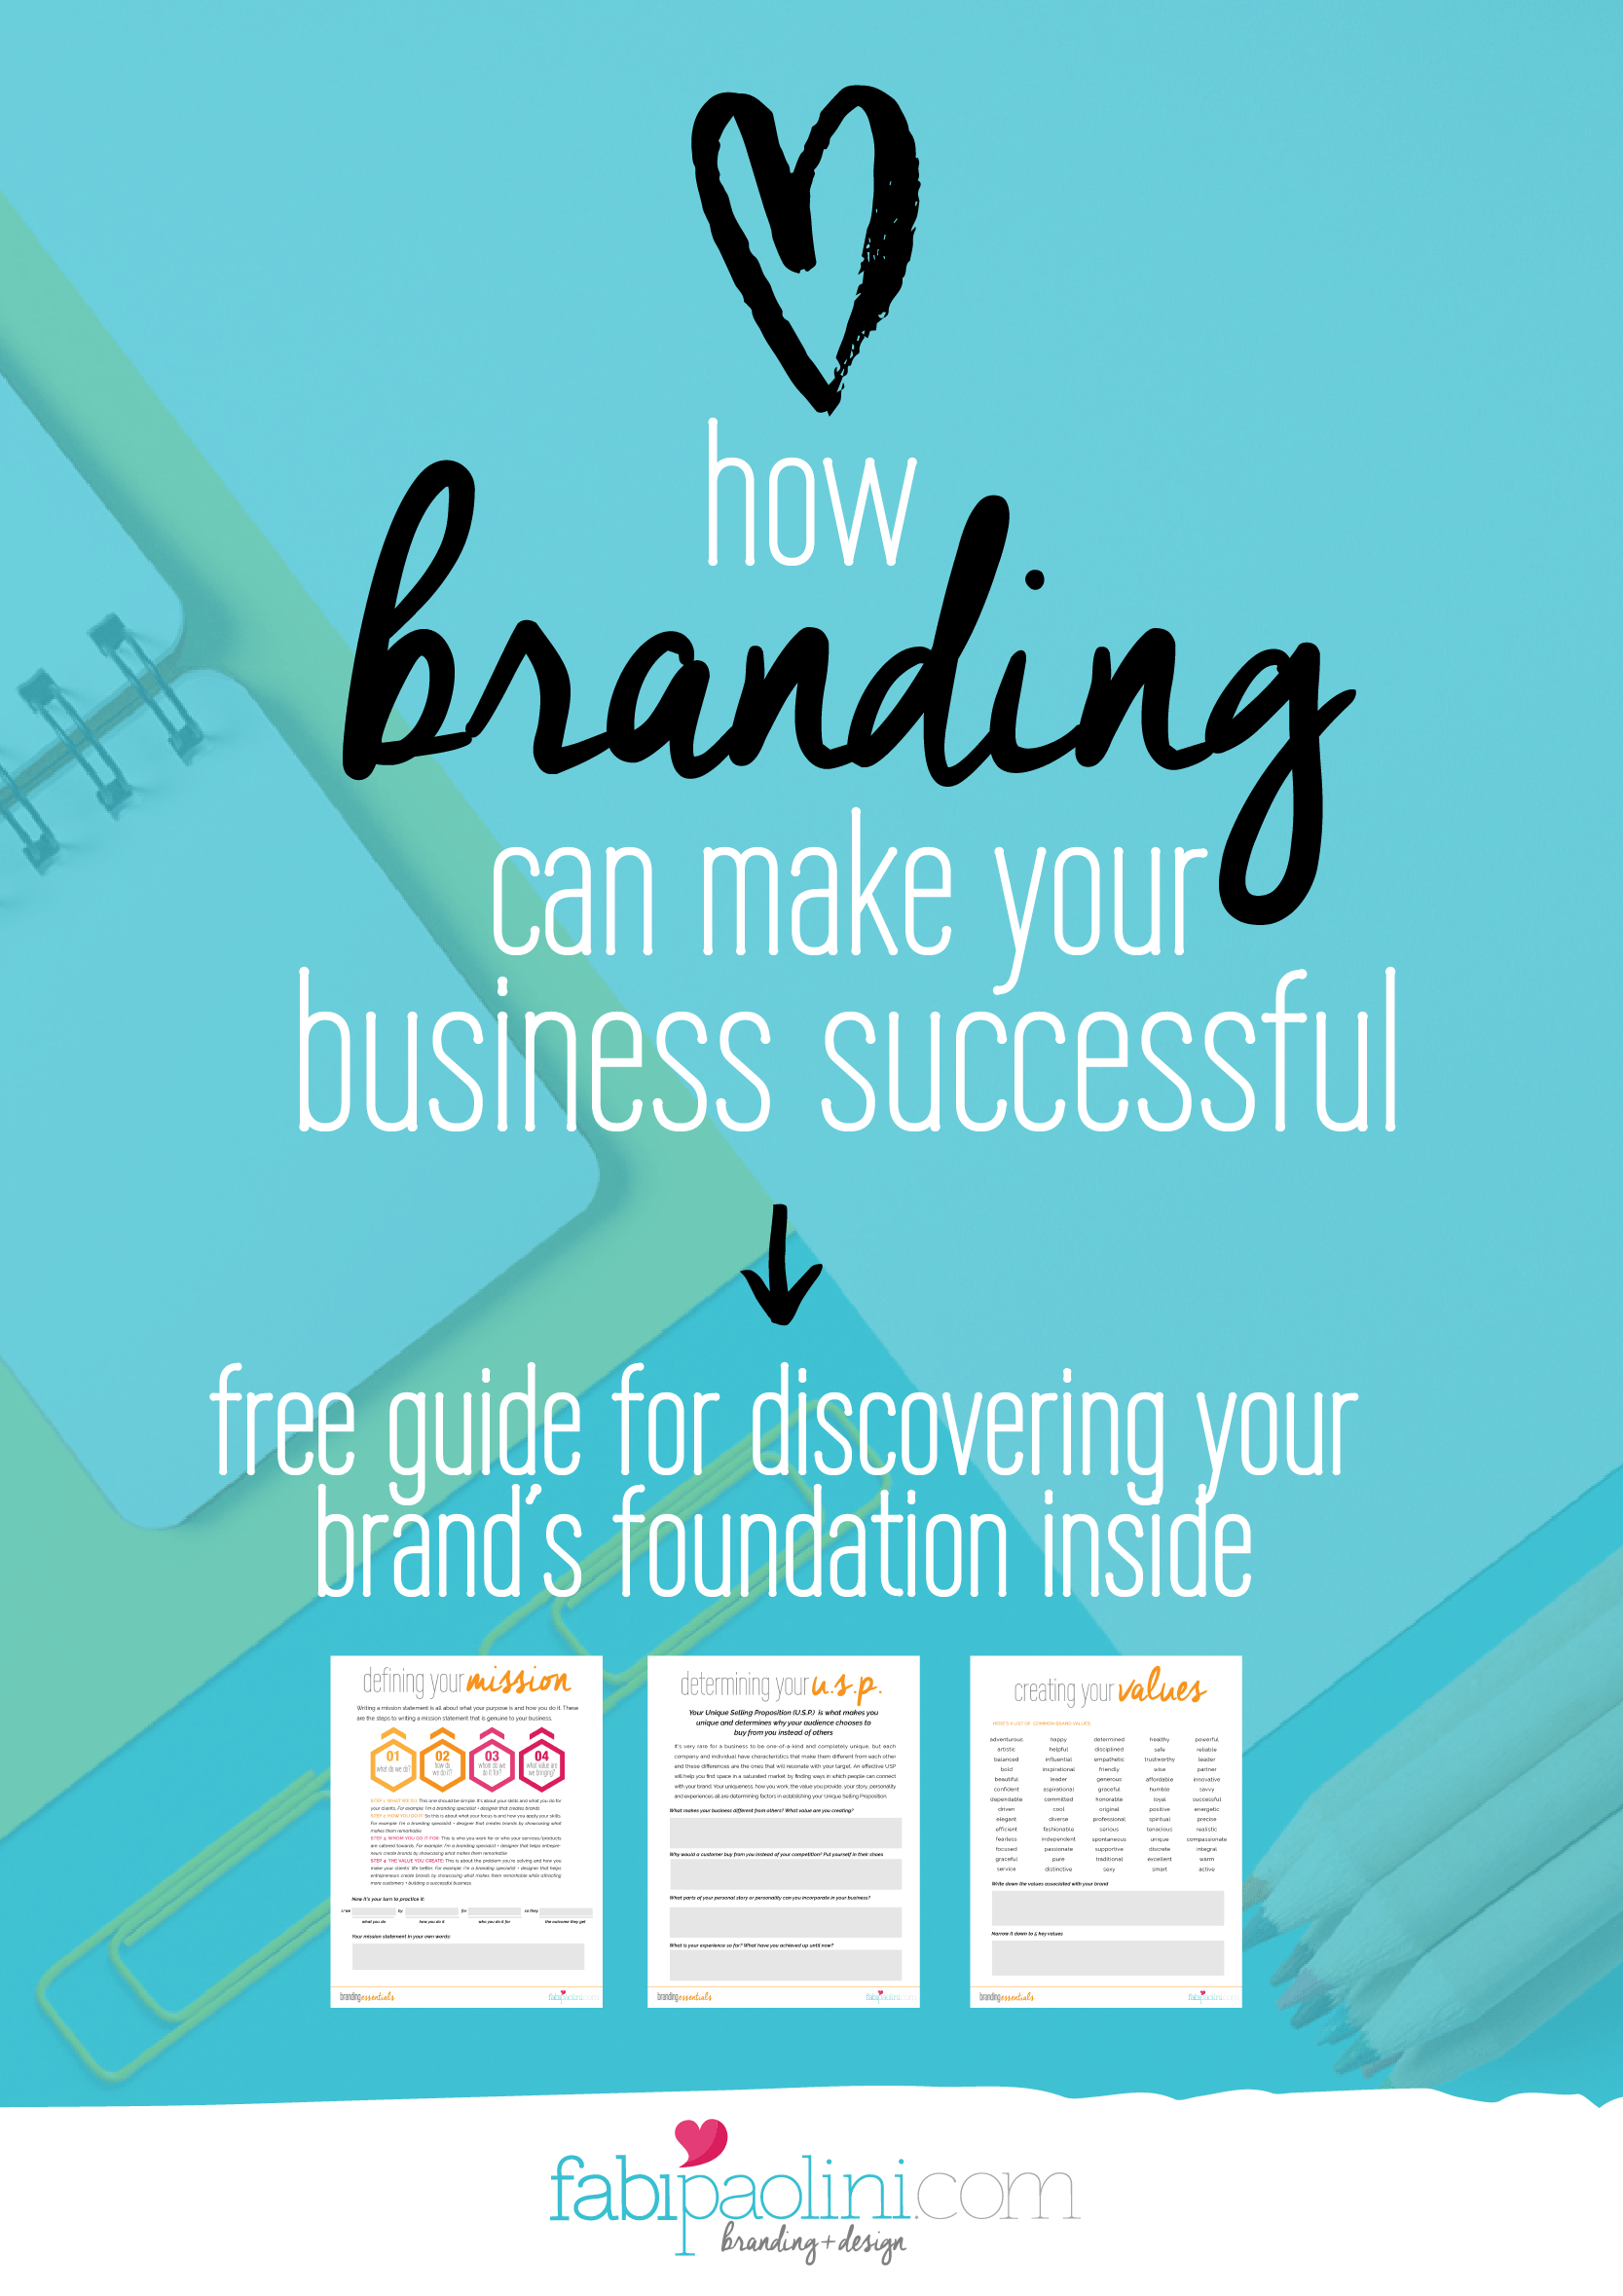 How branding can make your business successful. Free guide for discovering your brand's foundation inside. Click to download it now!